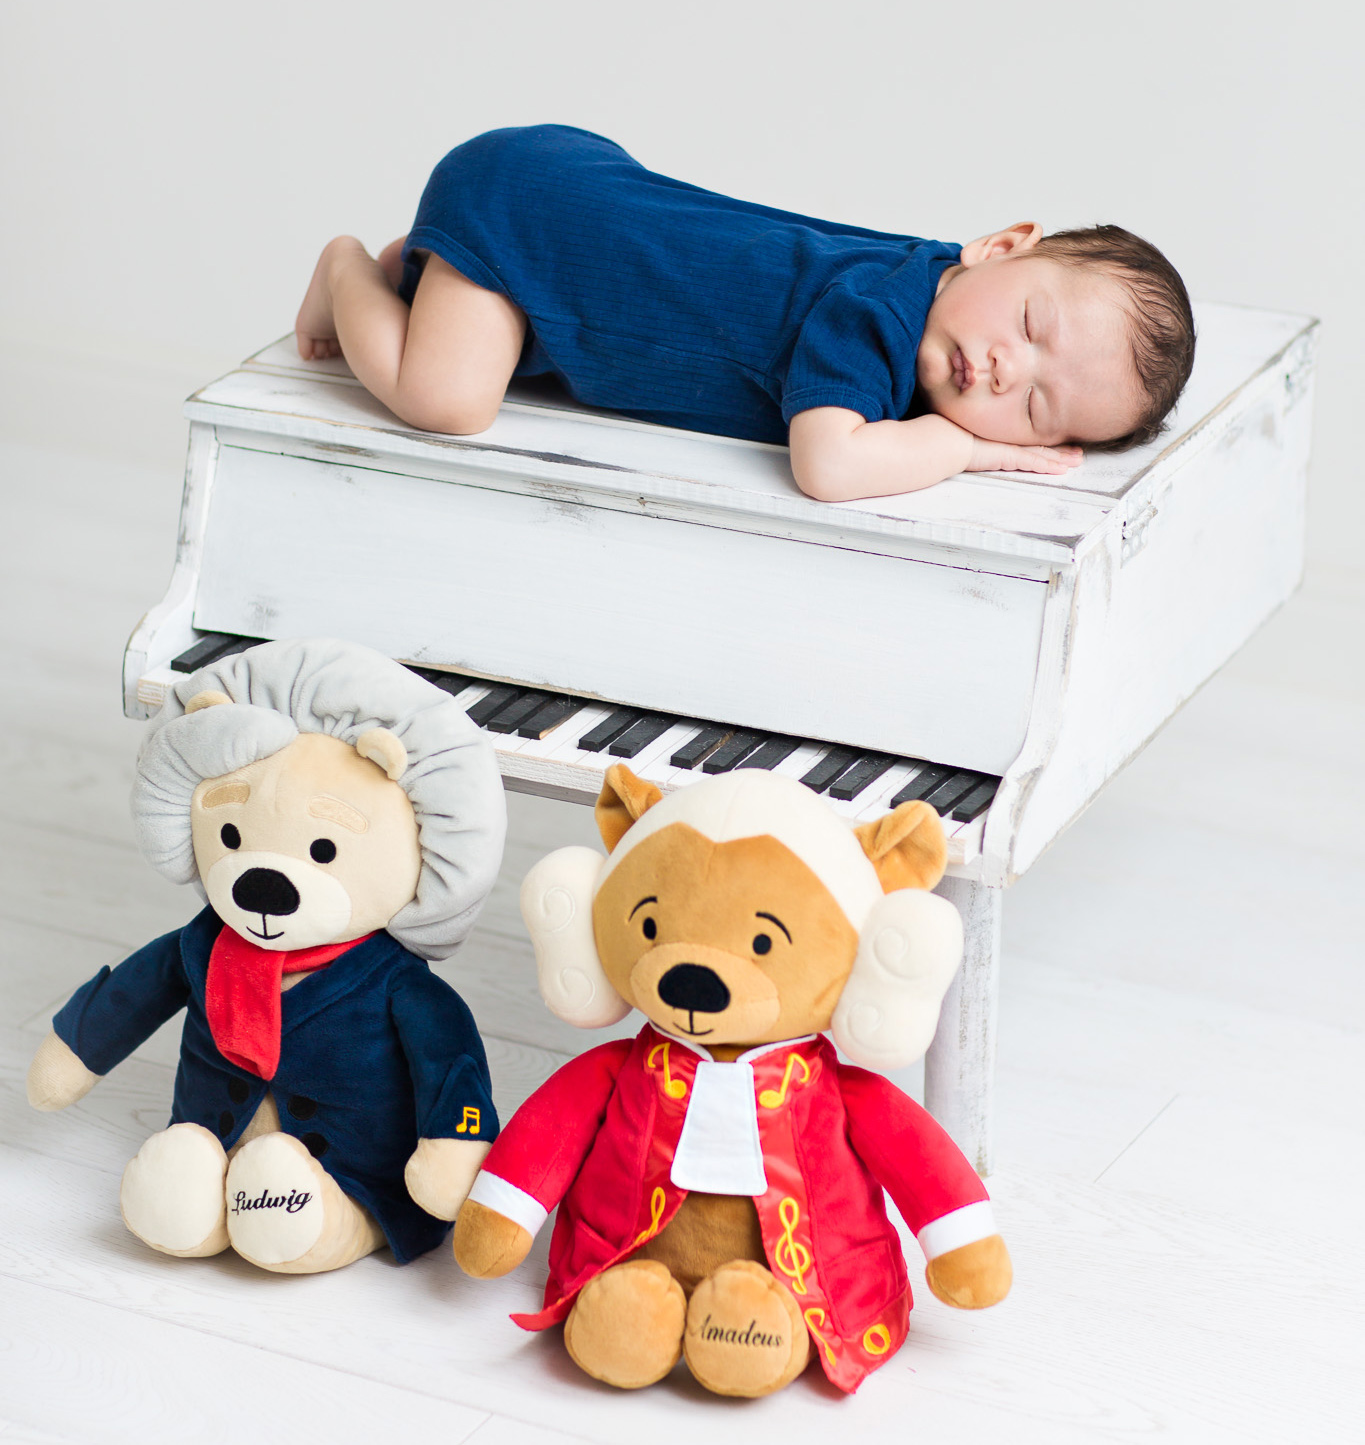 Curated Experience - It is not just about listening to classical music, it is about experiencing it through the most loved toy - an object of fondness and affection.Henryk, 2 months